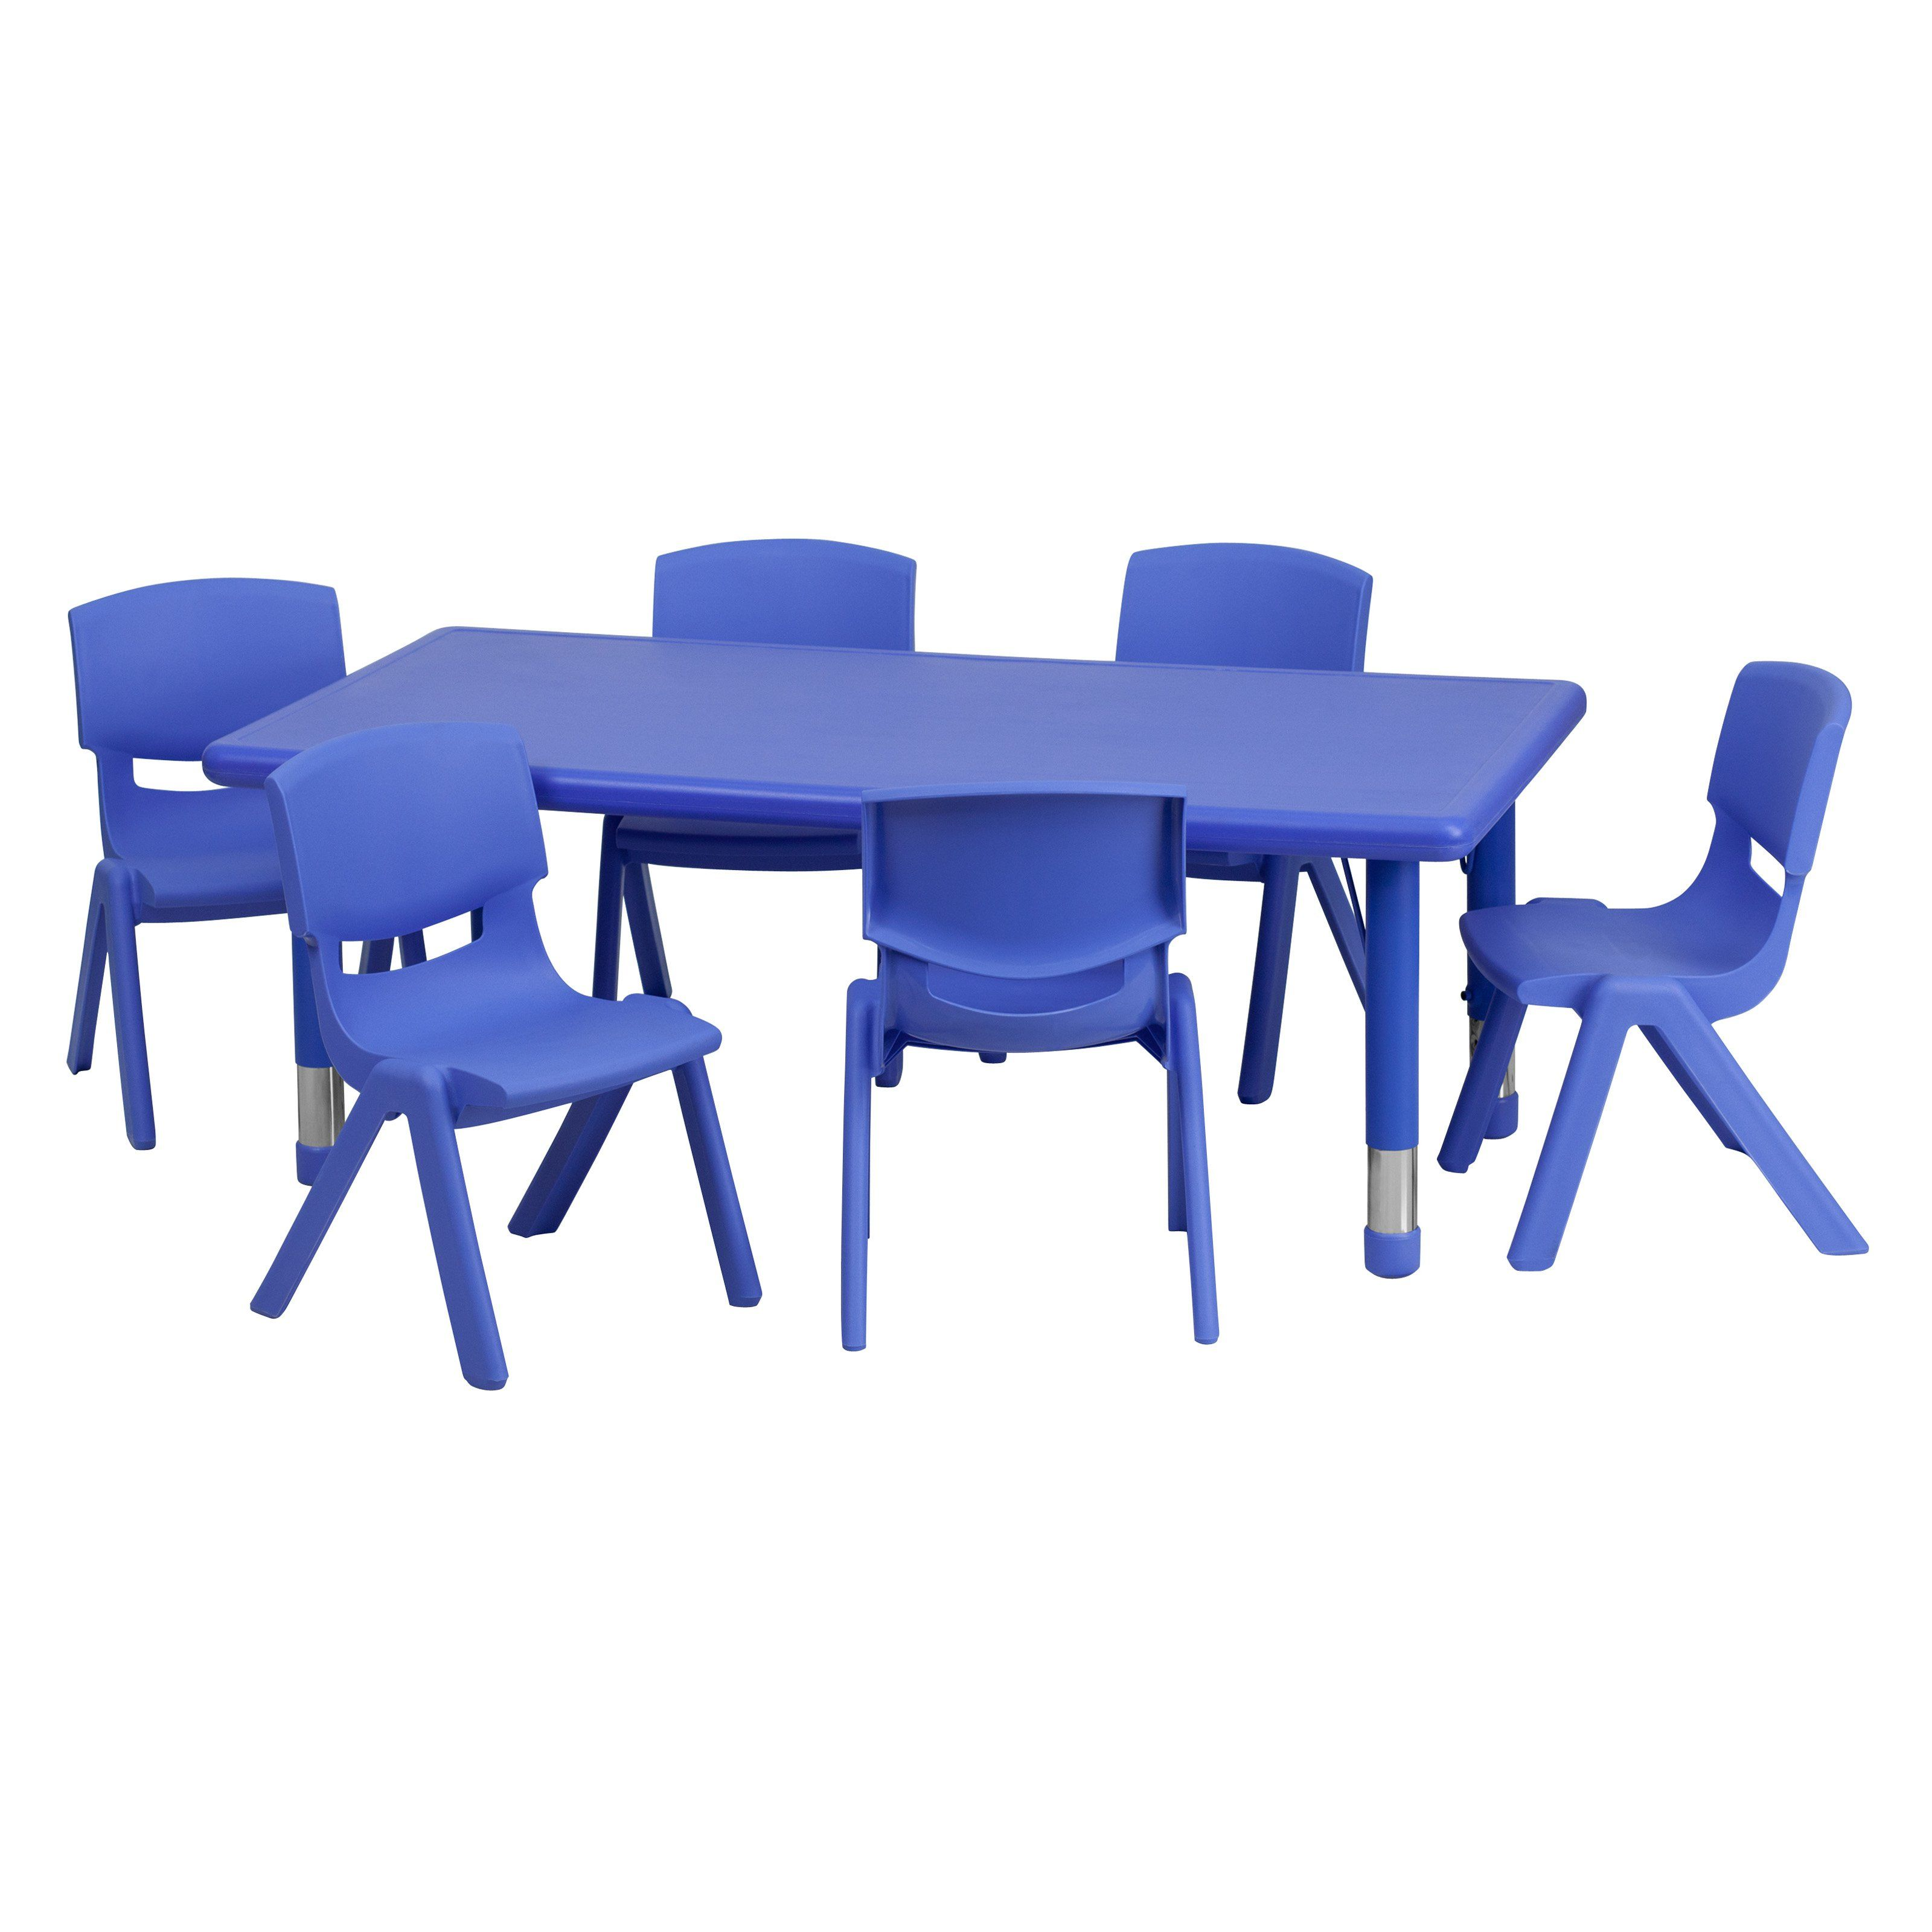 Flash Furniture 24w X 48l In Adjule Plastic Activity Table With 6 Chairs Yu Ycx 0013 2 Rect Tbl Blue E Gg